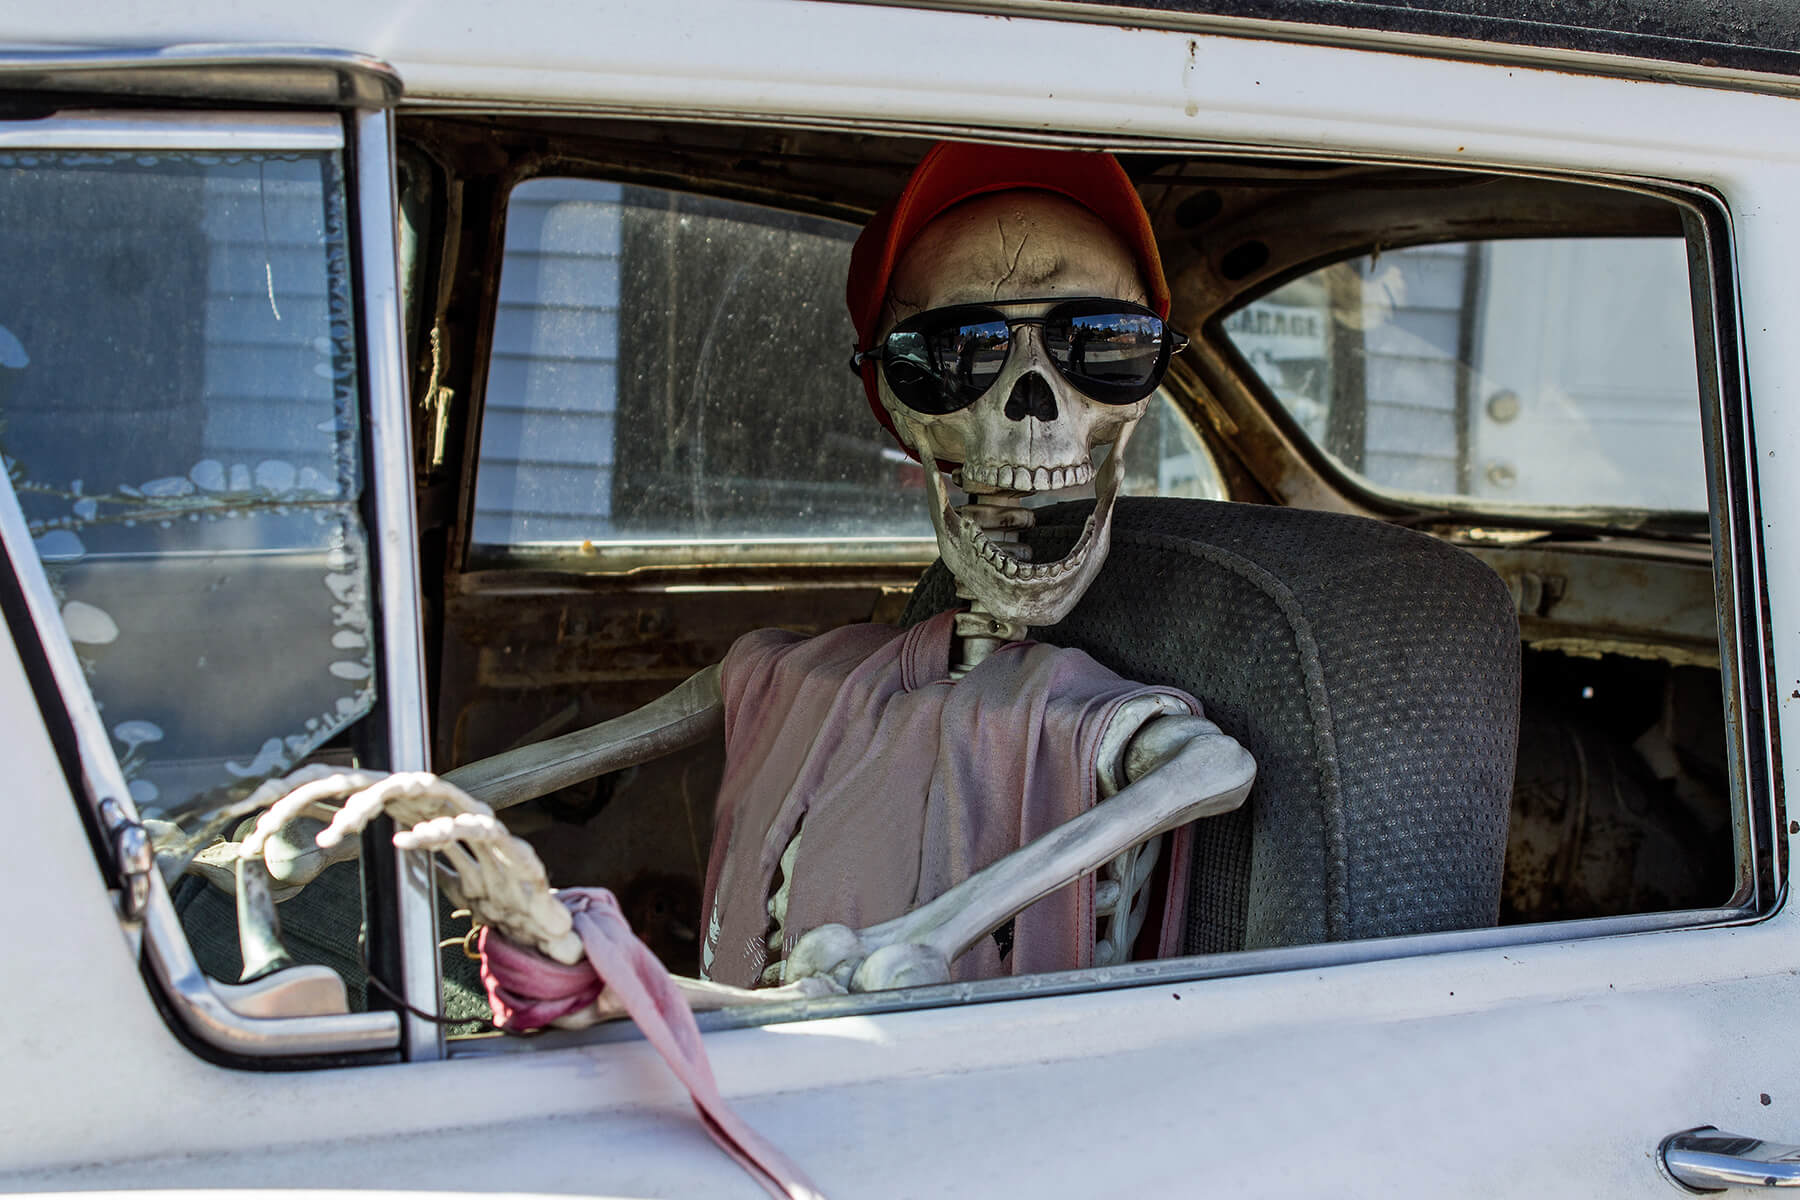 Angel's Transmission & Auto Repair Blog - Trick or Treat: Safe Road Tips for a Happy Halloween